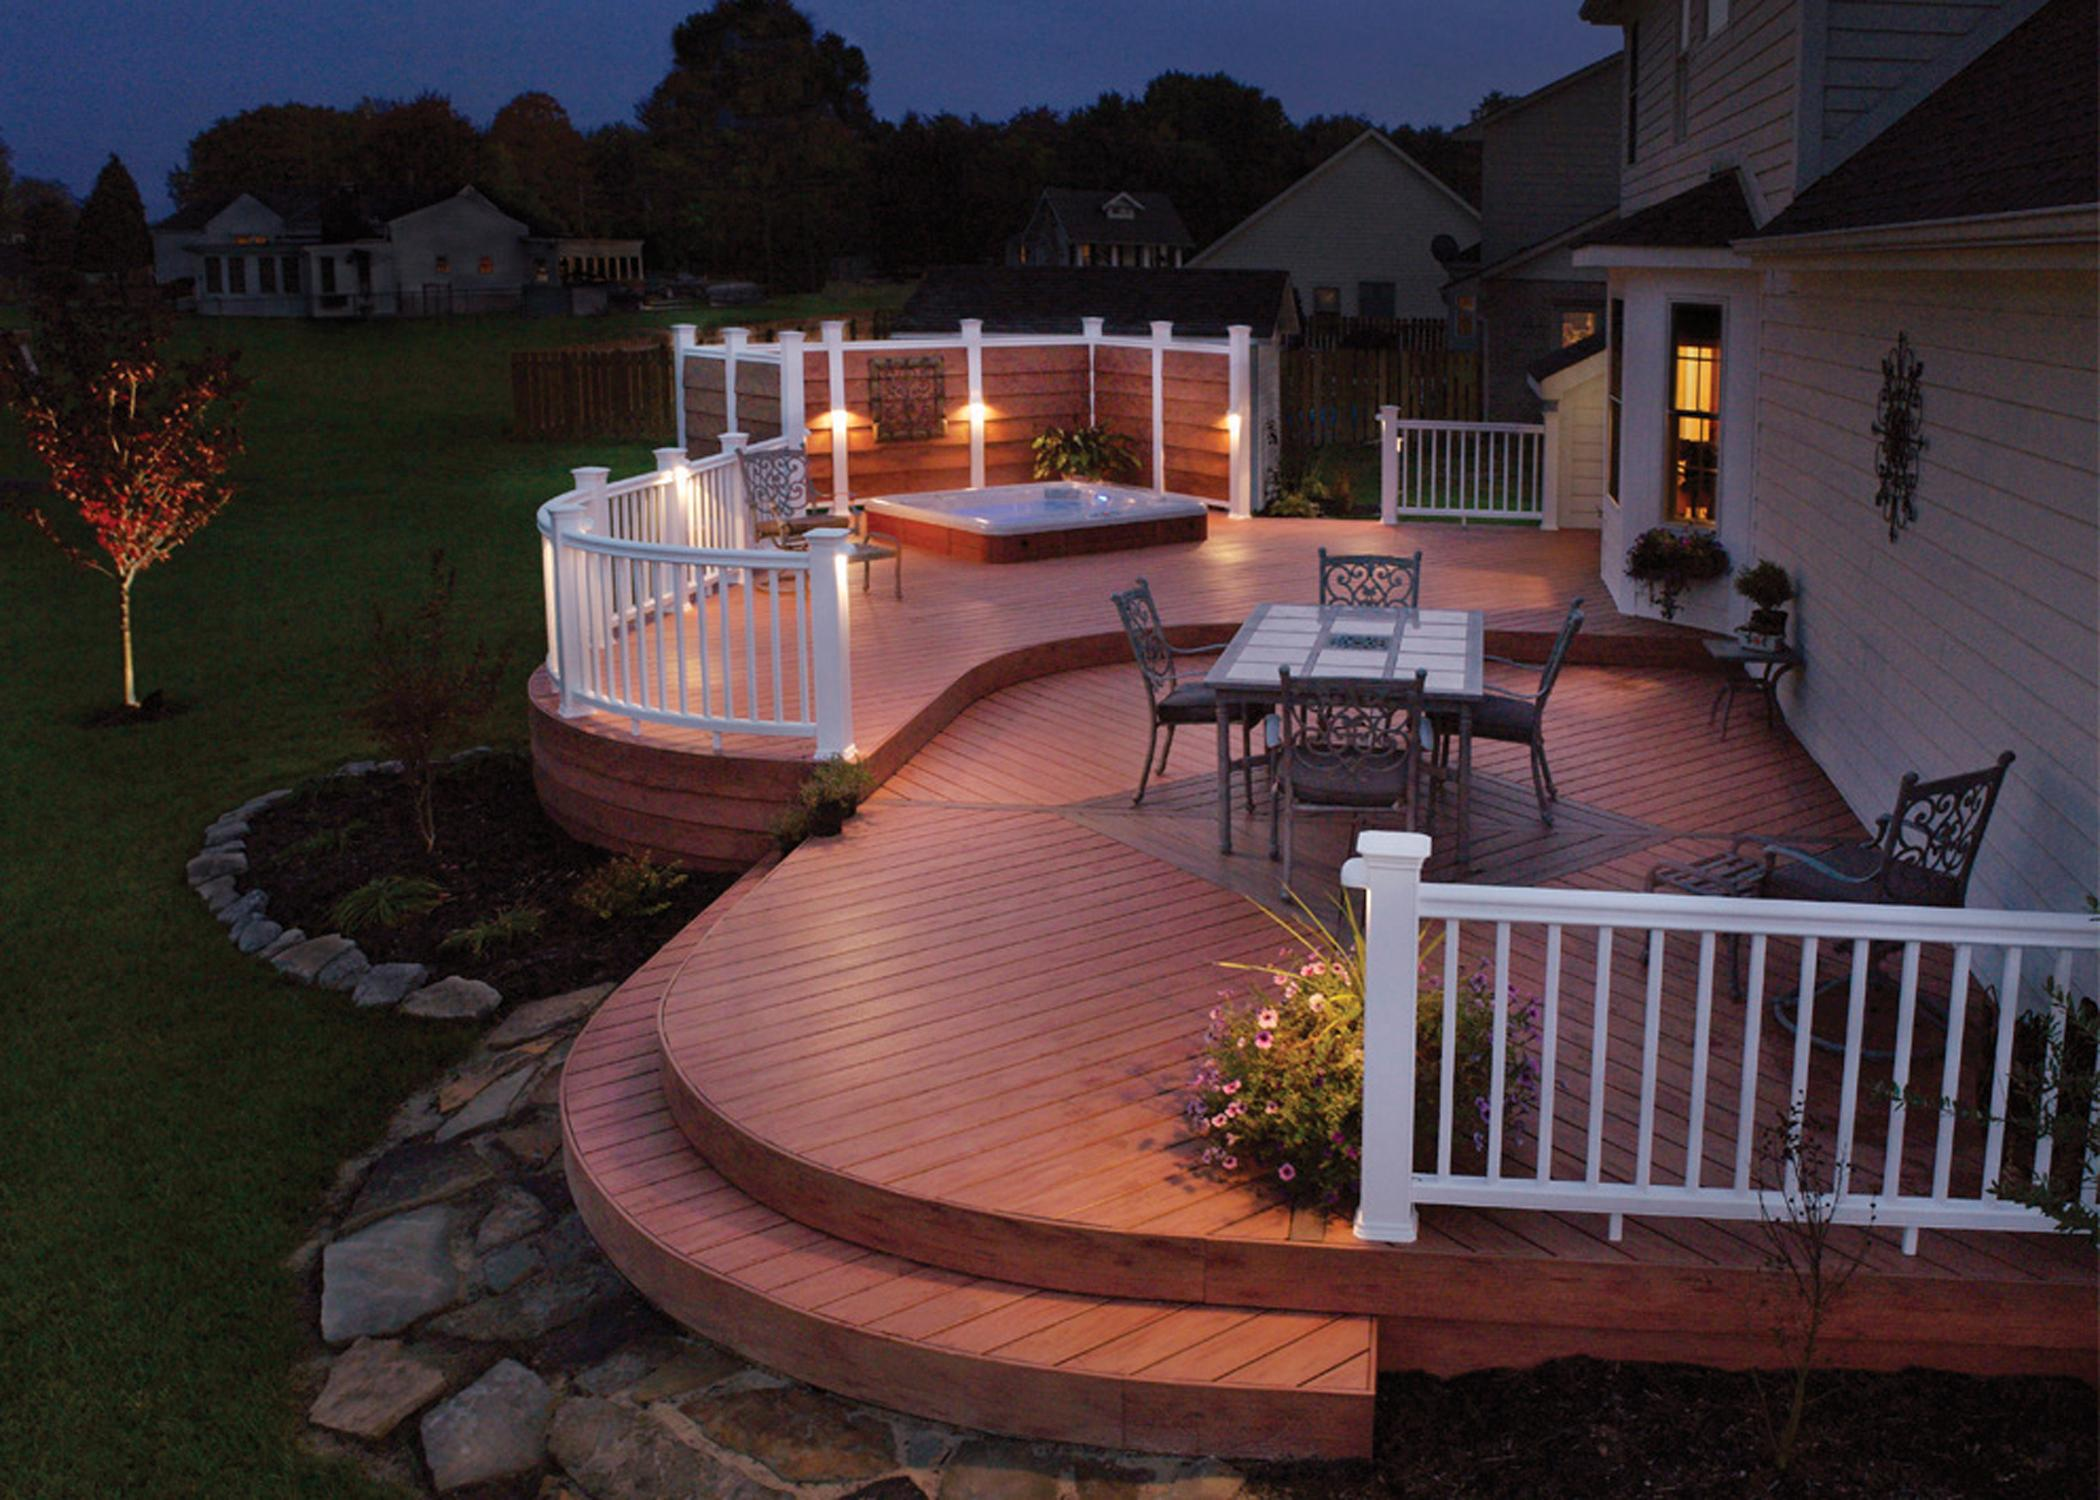 Deck lighting & Deck Lighting | Outdoor Lighting and Landscape Lighting in St. Louis ...